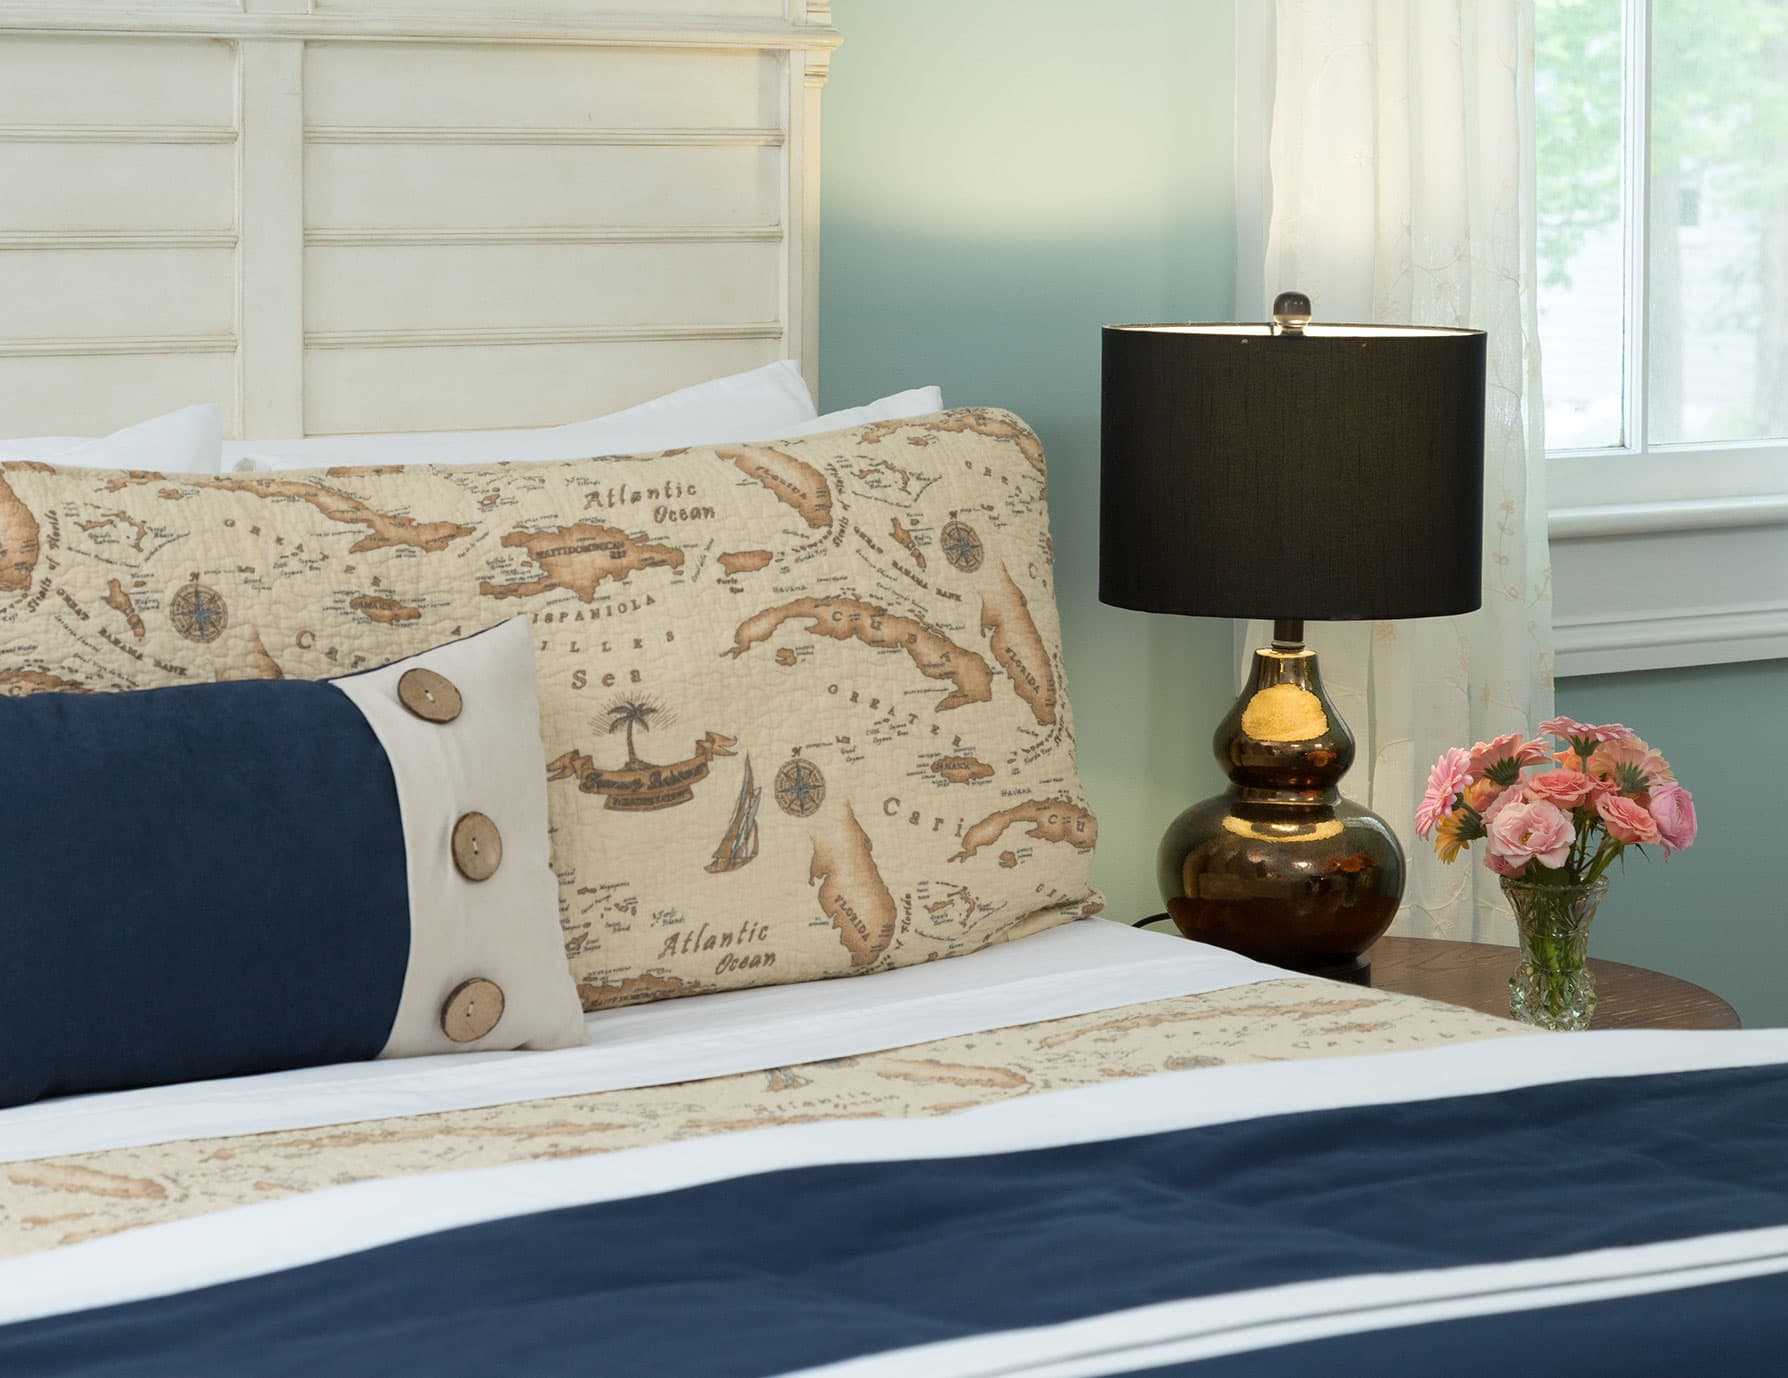 Pillows with antique-style map designs